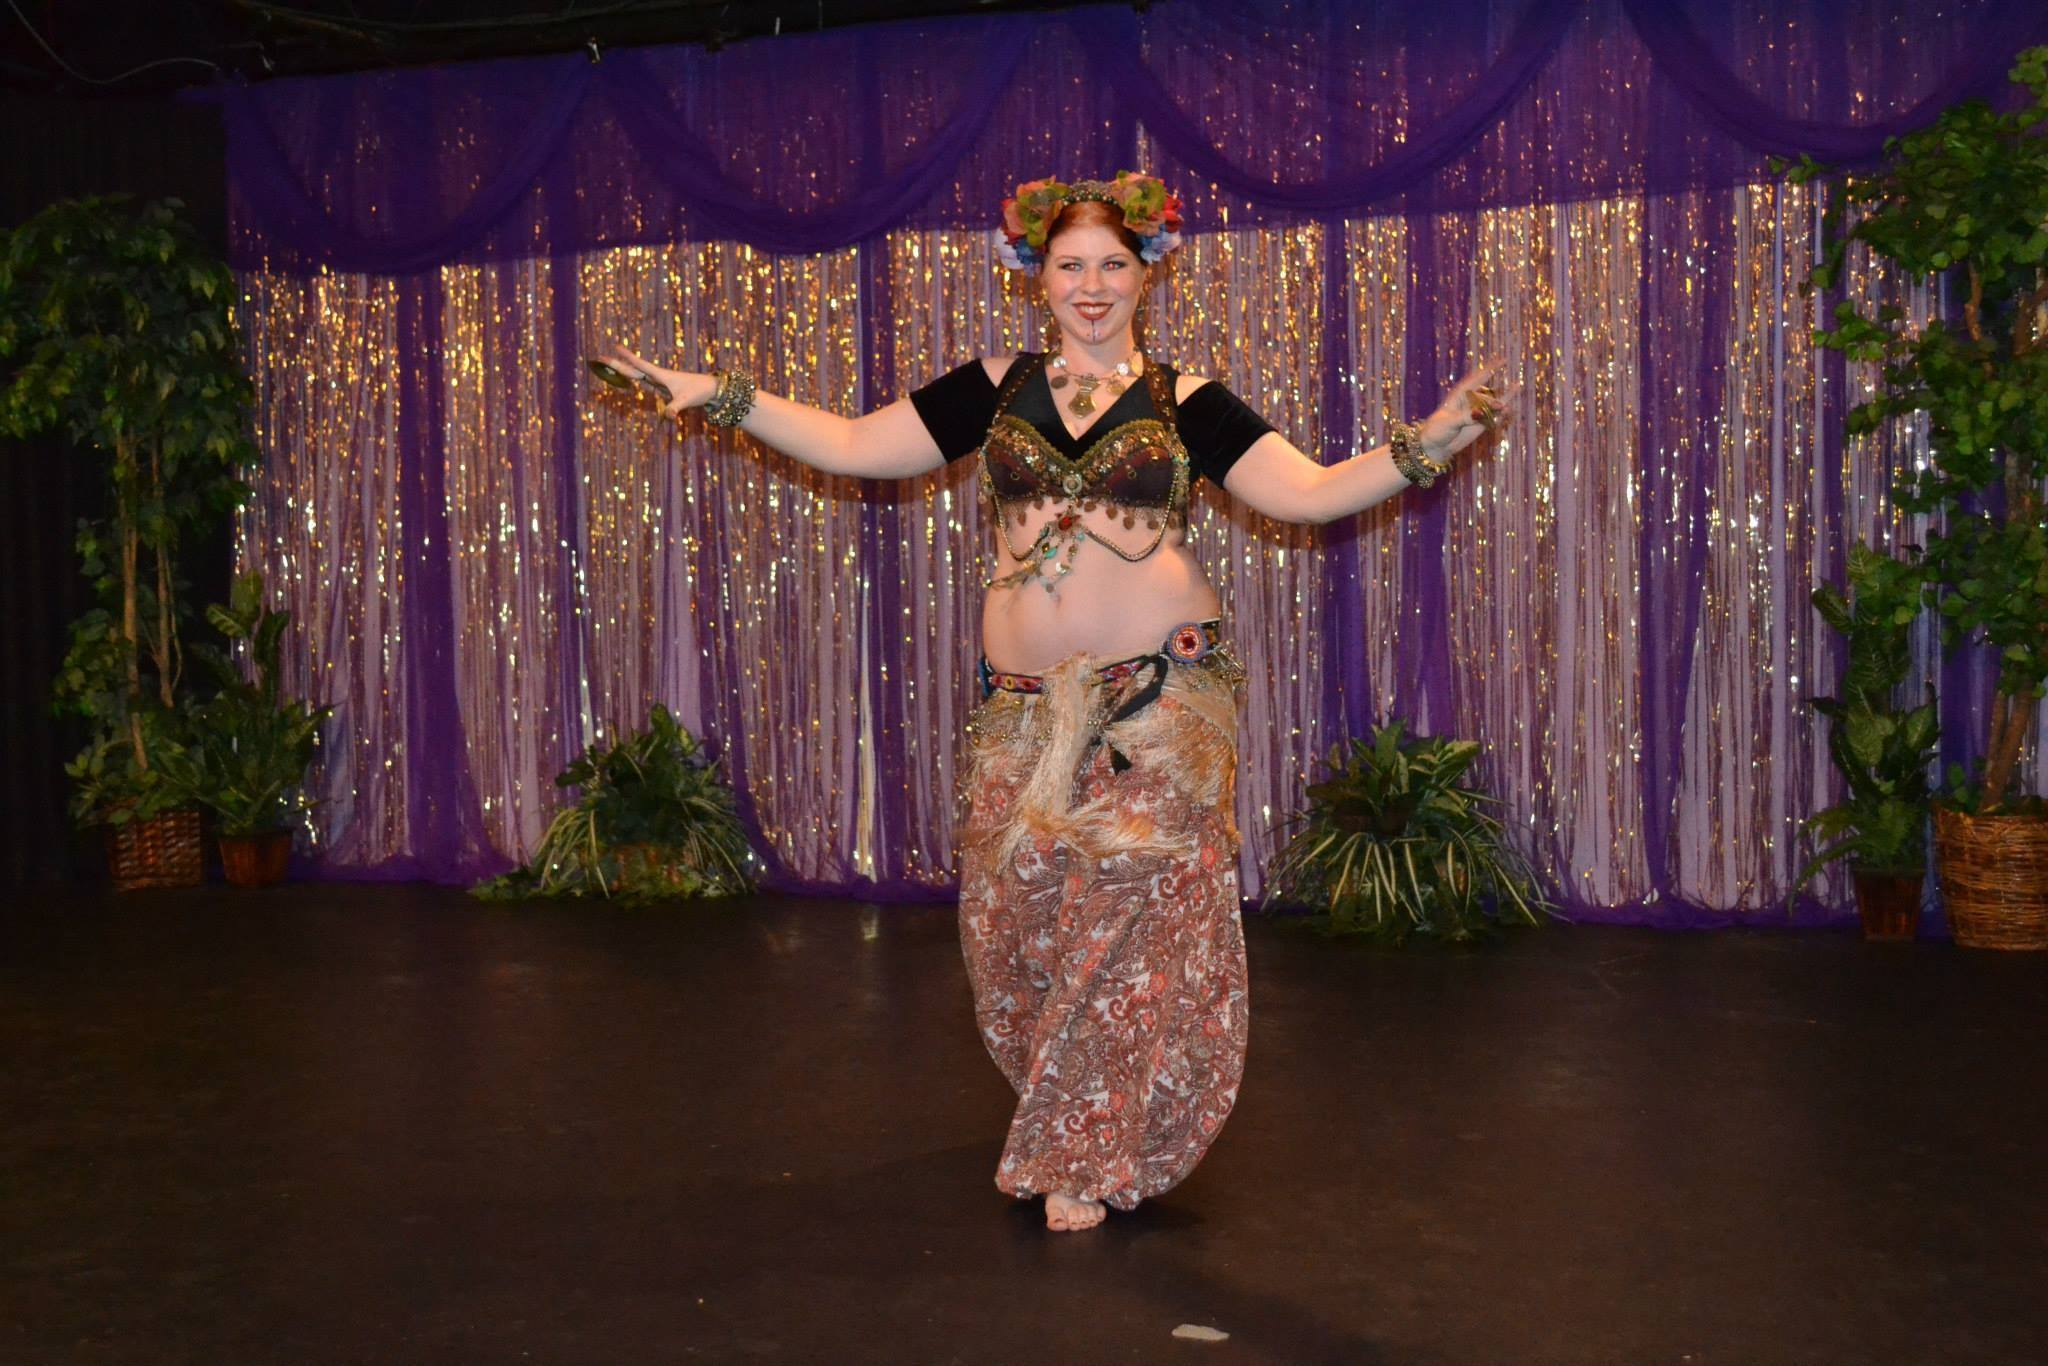 Amani Maharet performing at the American BellyDance Studio's annual gala show.